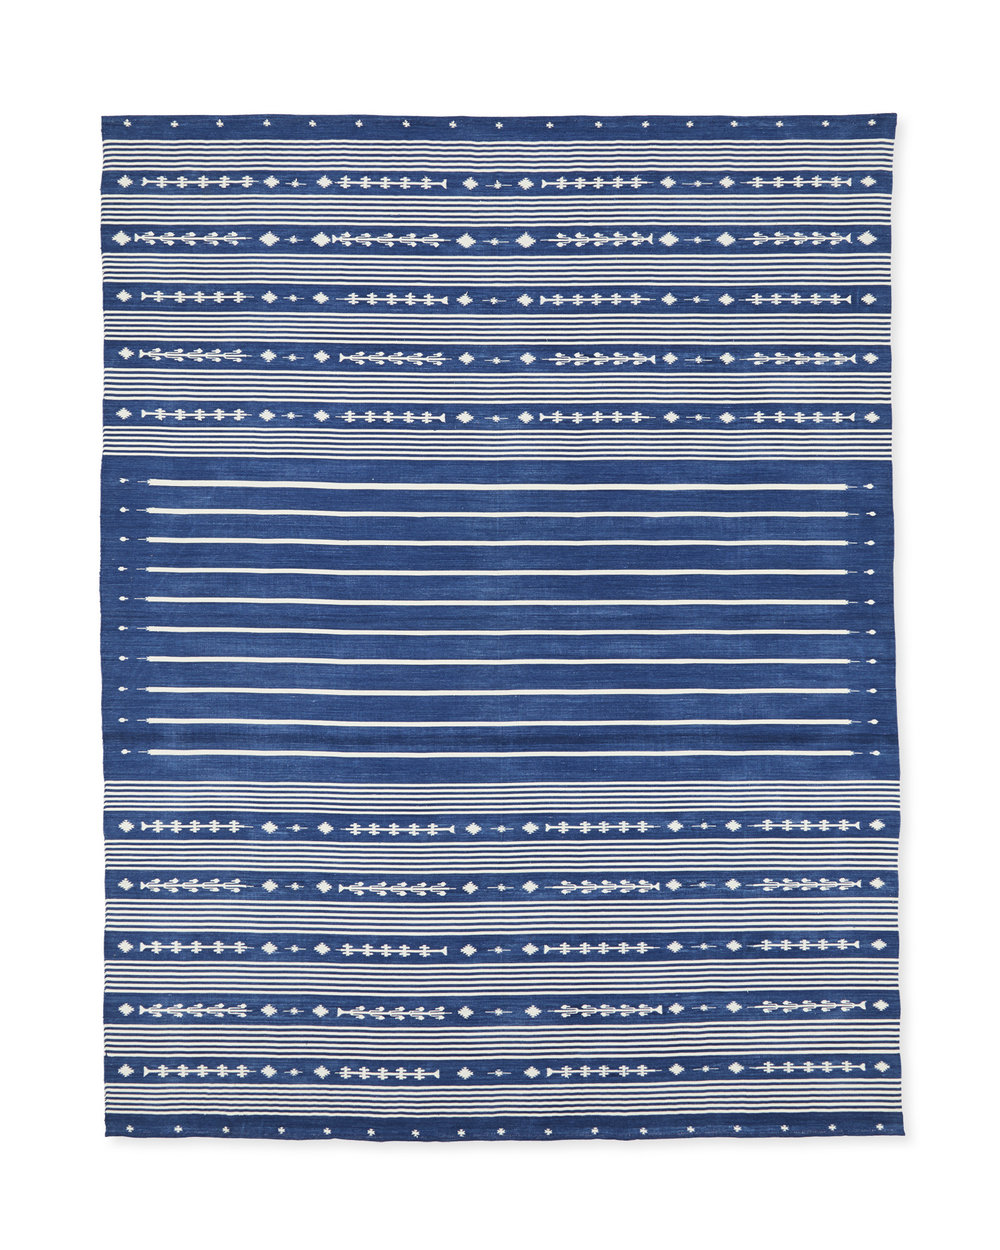 Rug_Carpinteria_Striped_Motif_8x10_Blue_MV_0512_Crop_SH.jpg